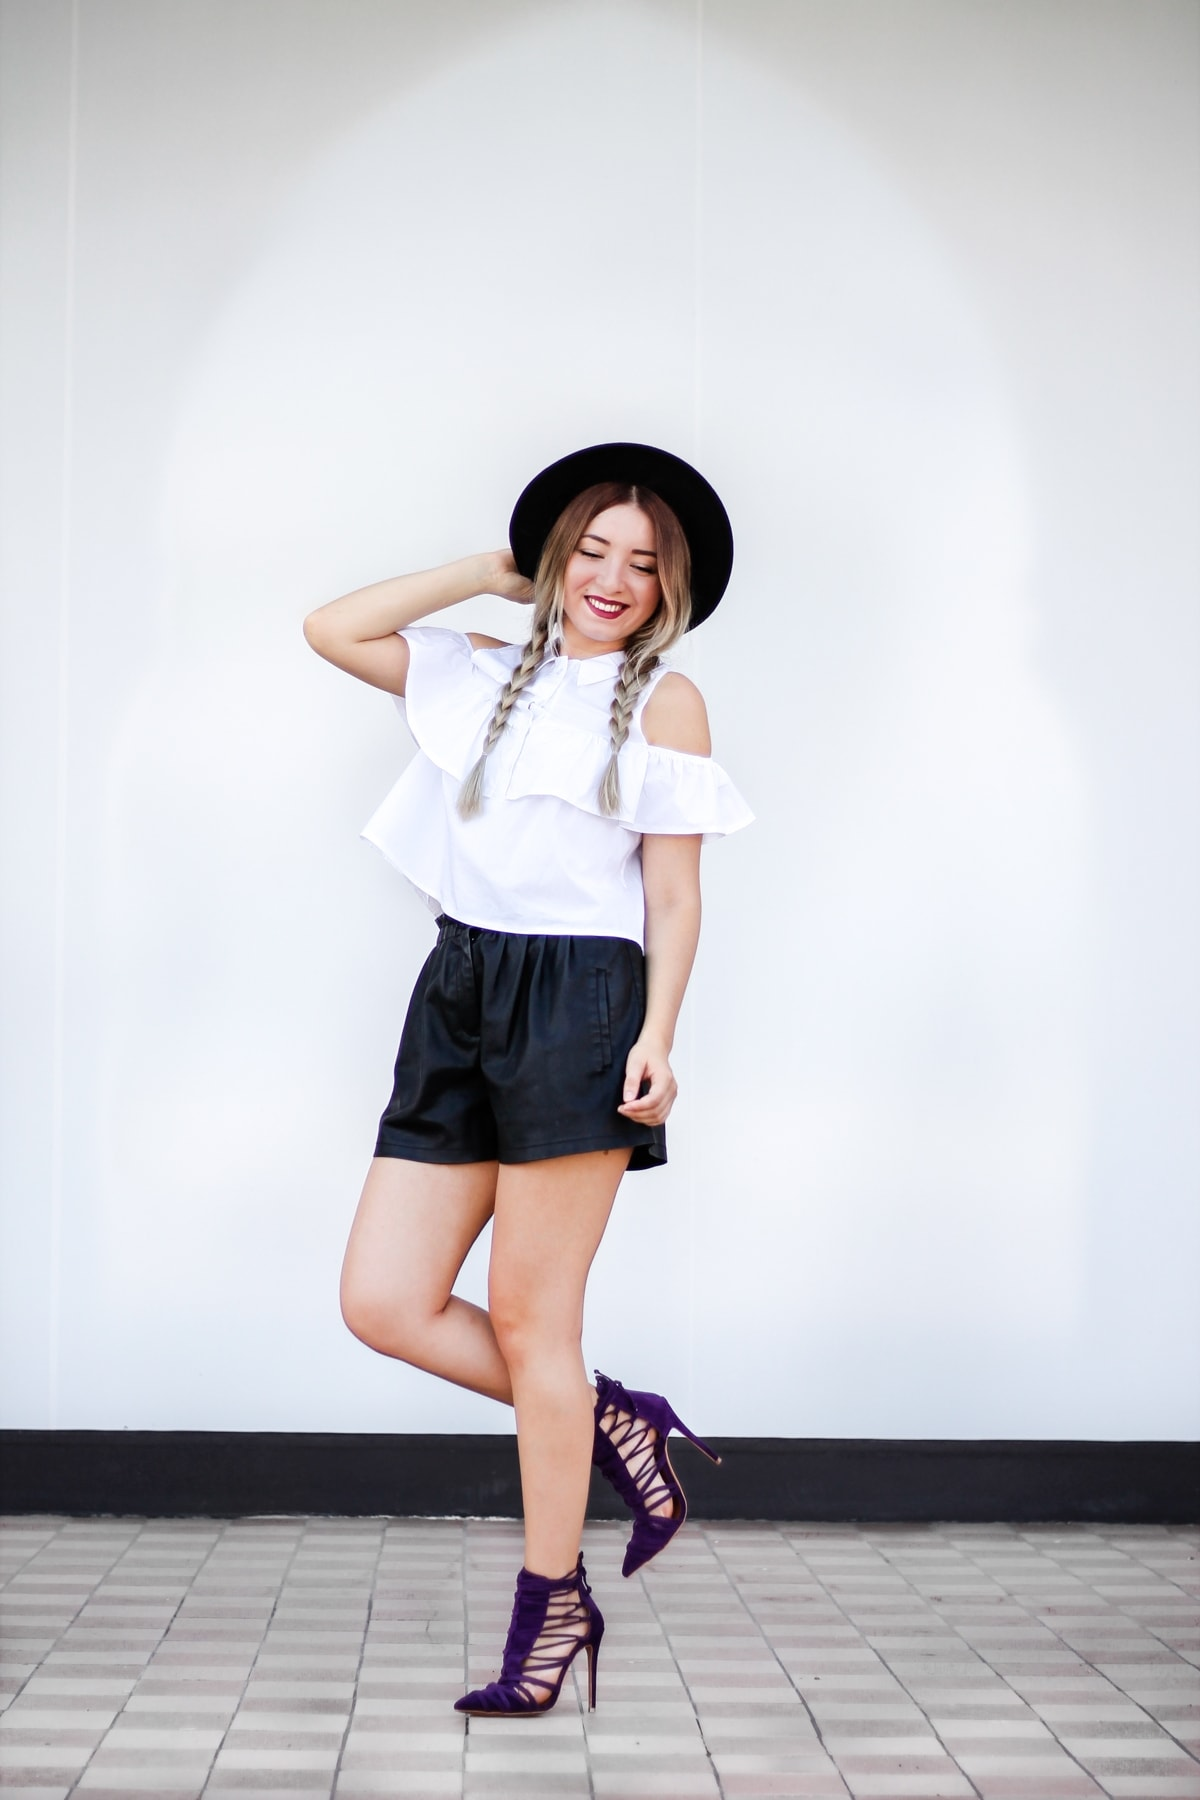 Street style: white open shoulder ruffle shirt, black leather shorts, pants, purple shoes, heels, black hat, fashion blogger Andreea Ristea, summer look